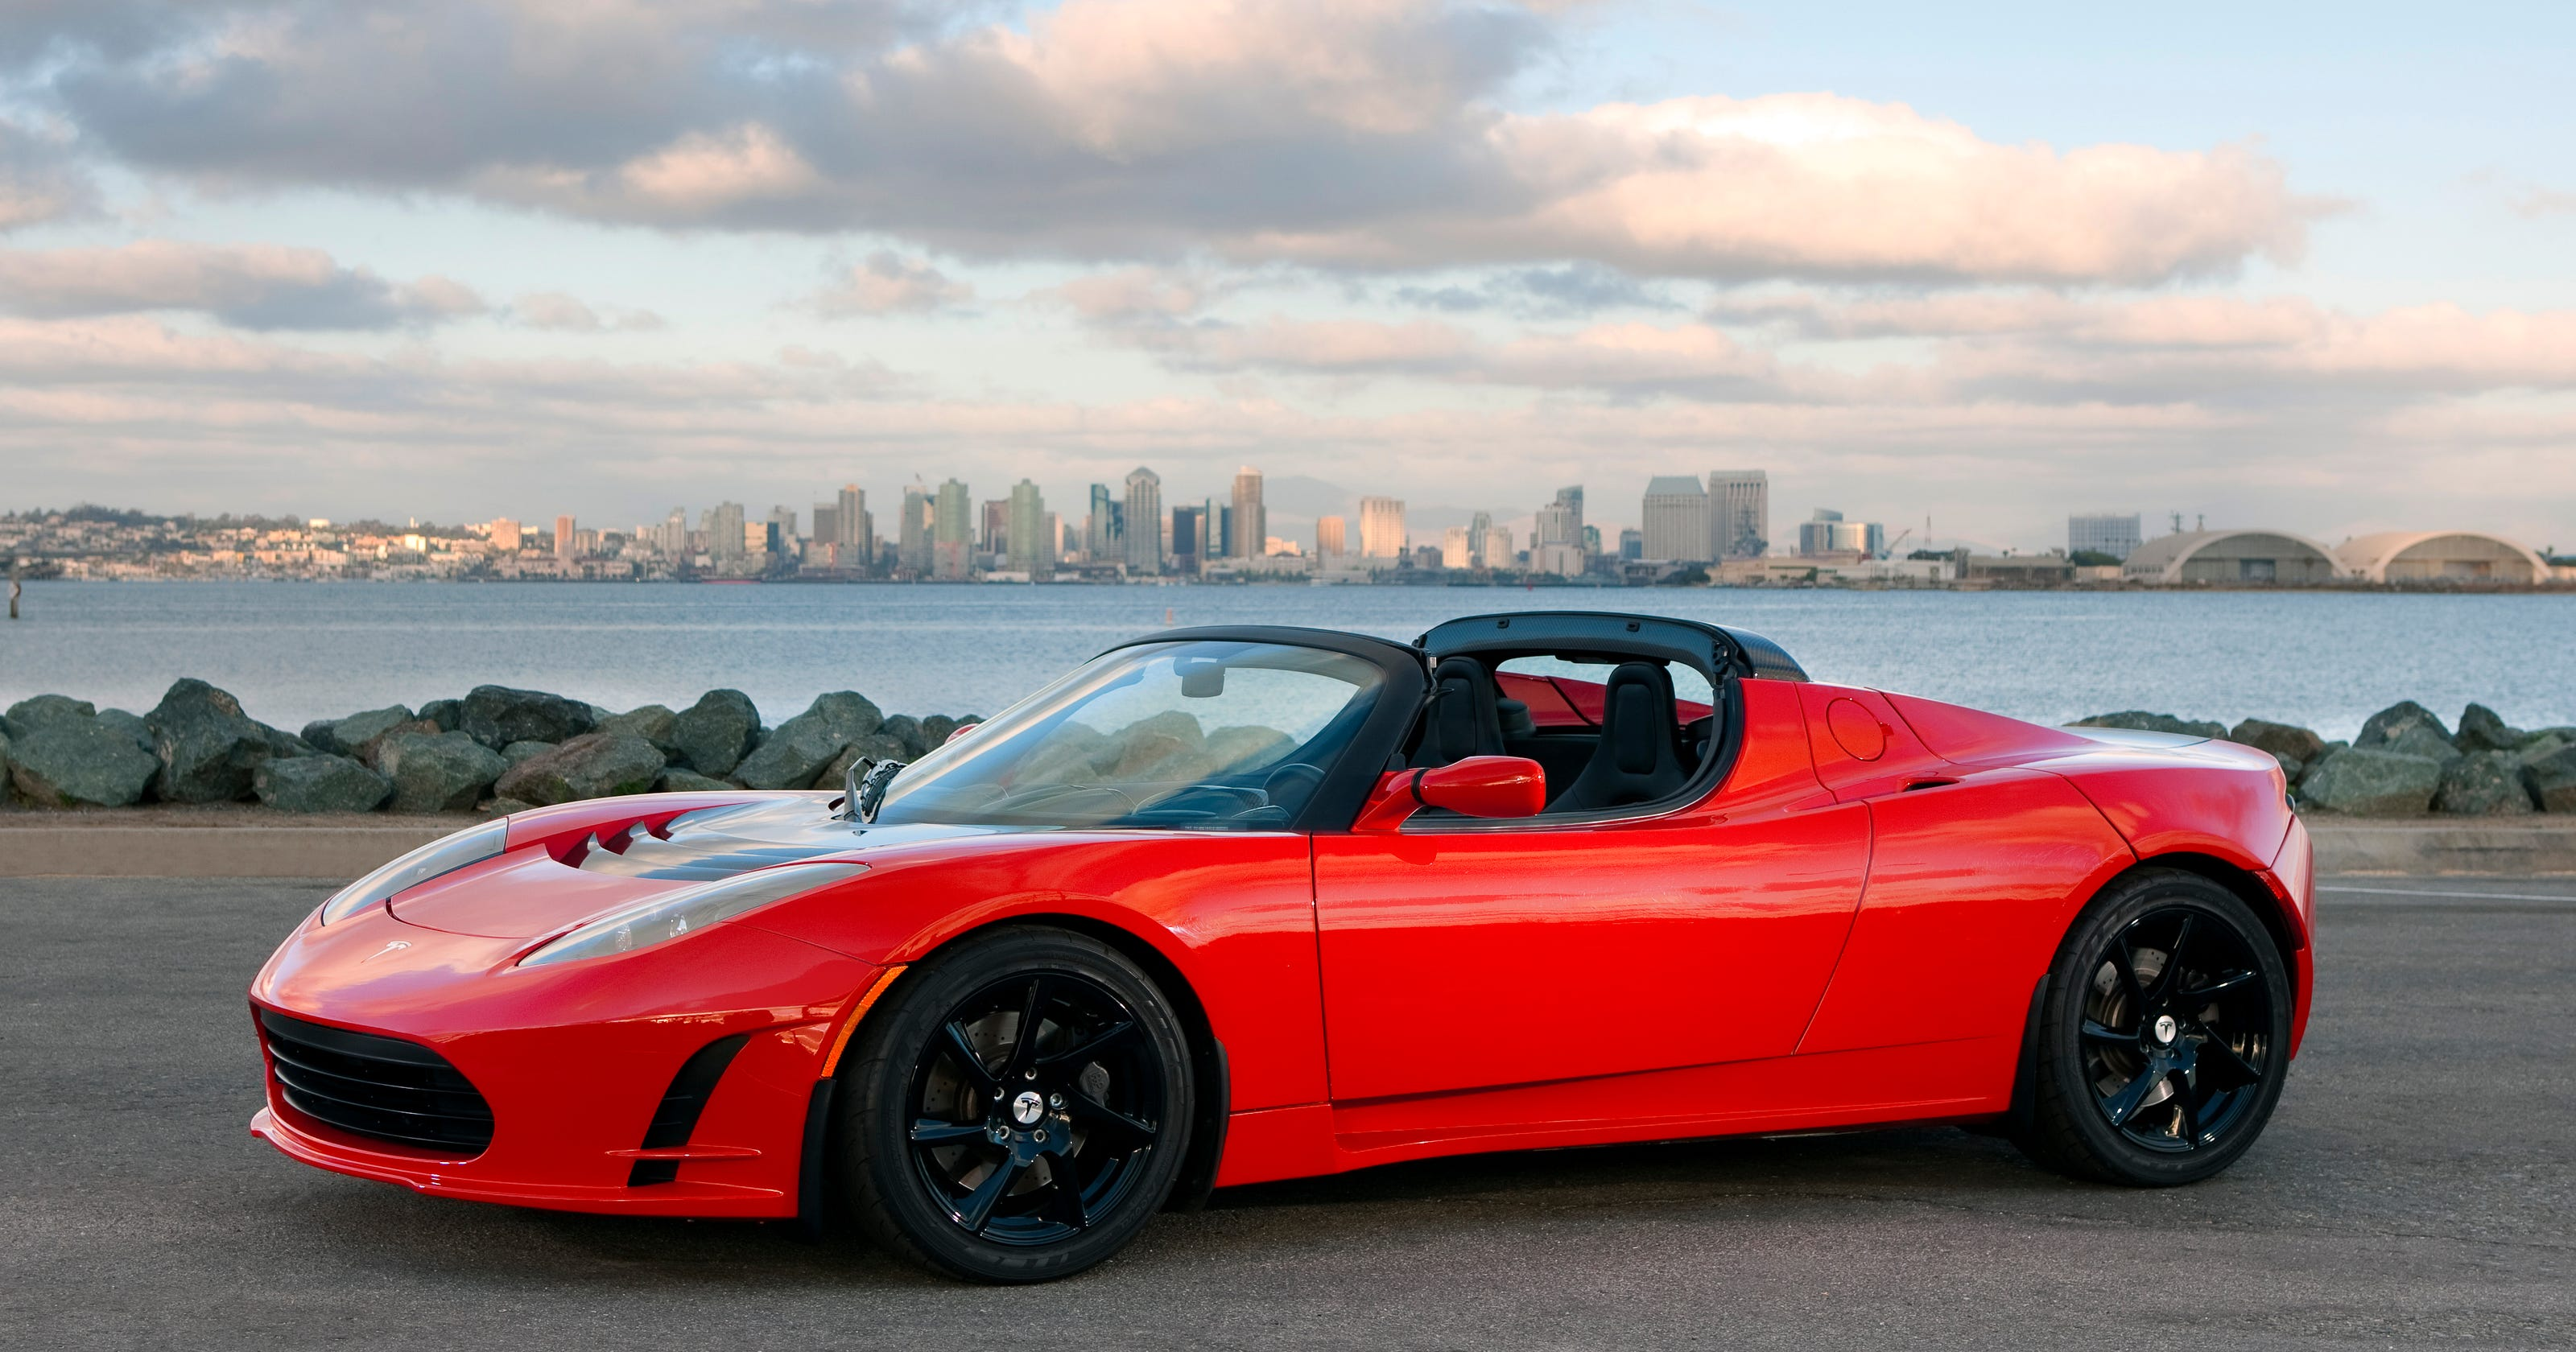 Musk says Falcon Heavy rocket will launch Tesla Roadster car